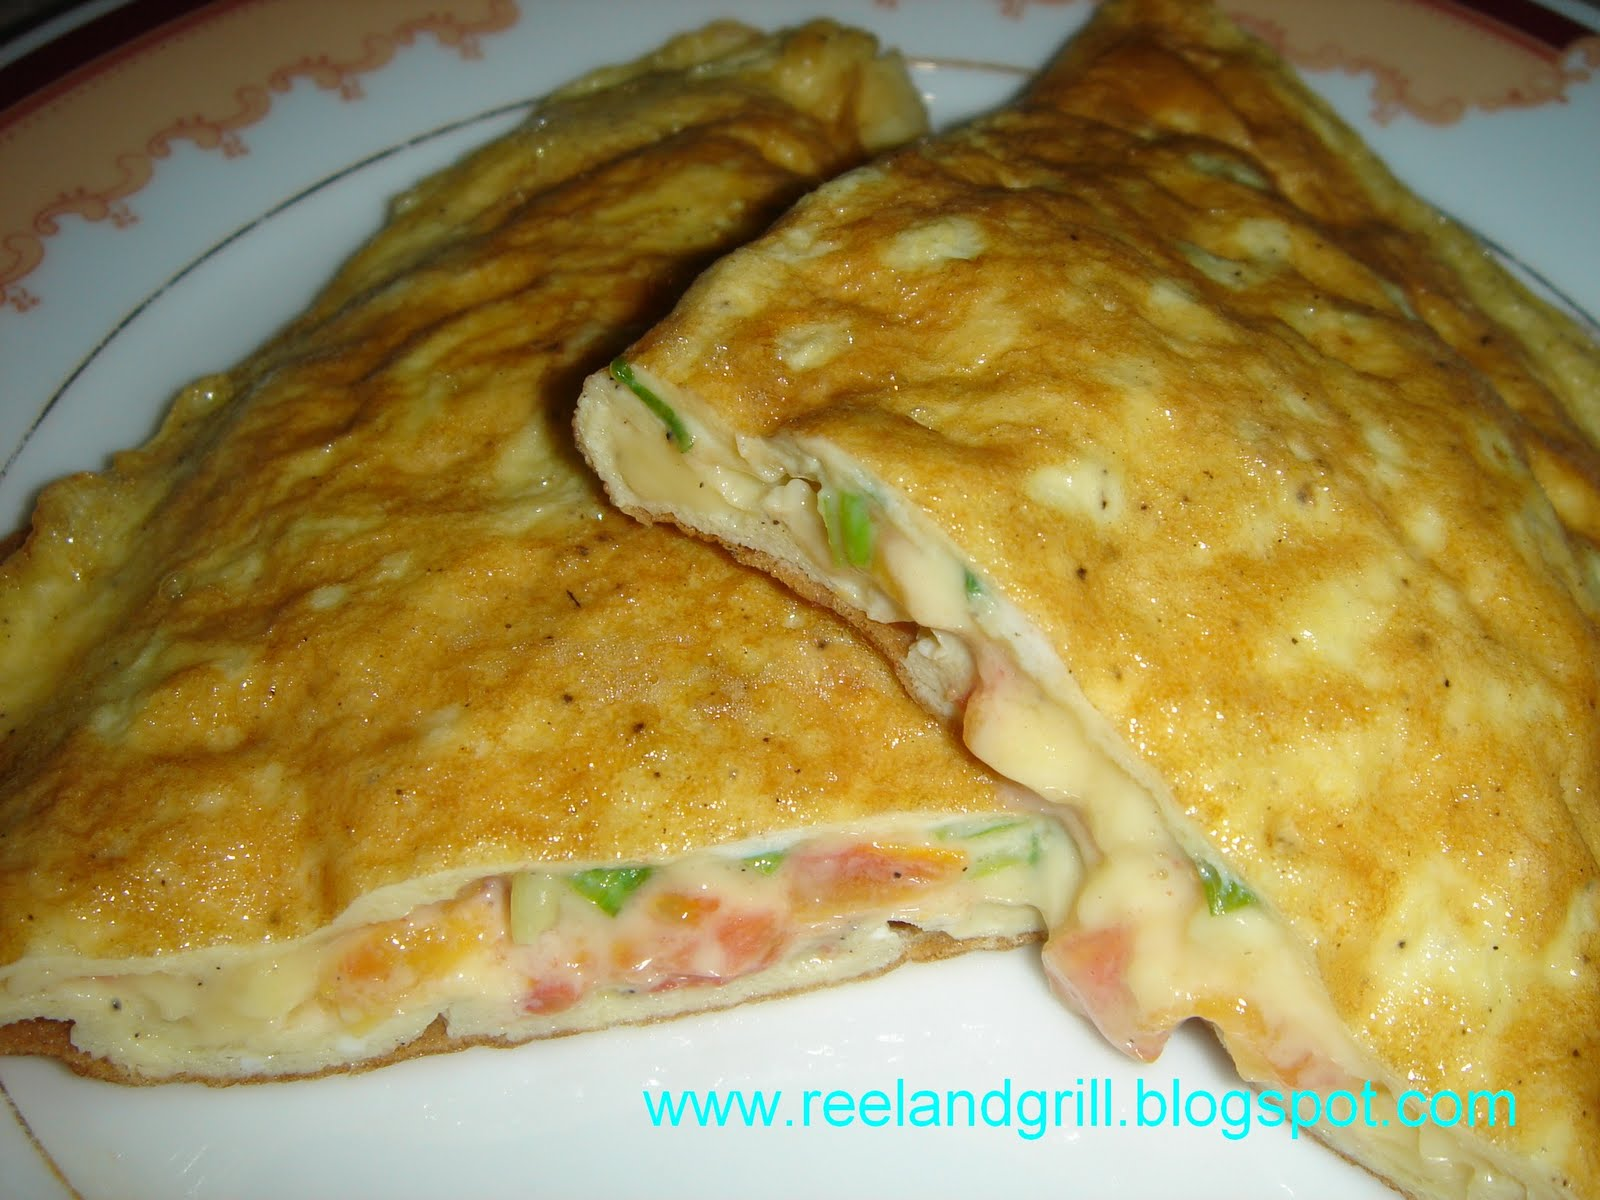 Reel and Grill: Tomato and Cheese Omelette